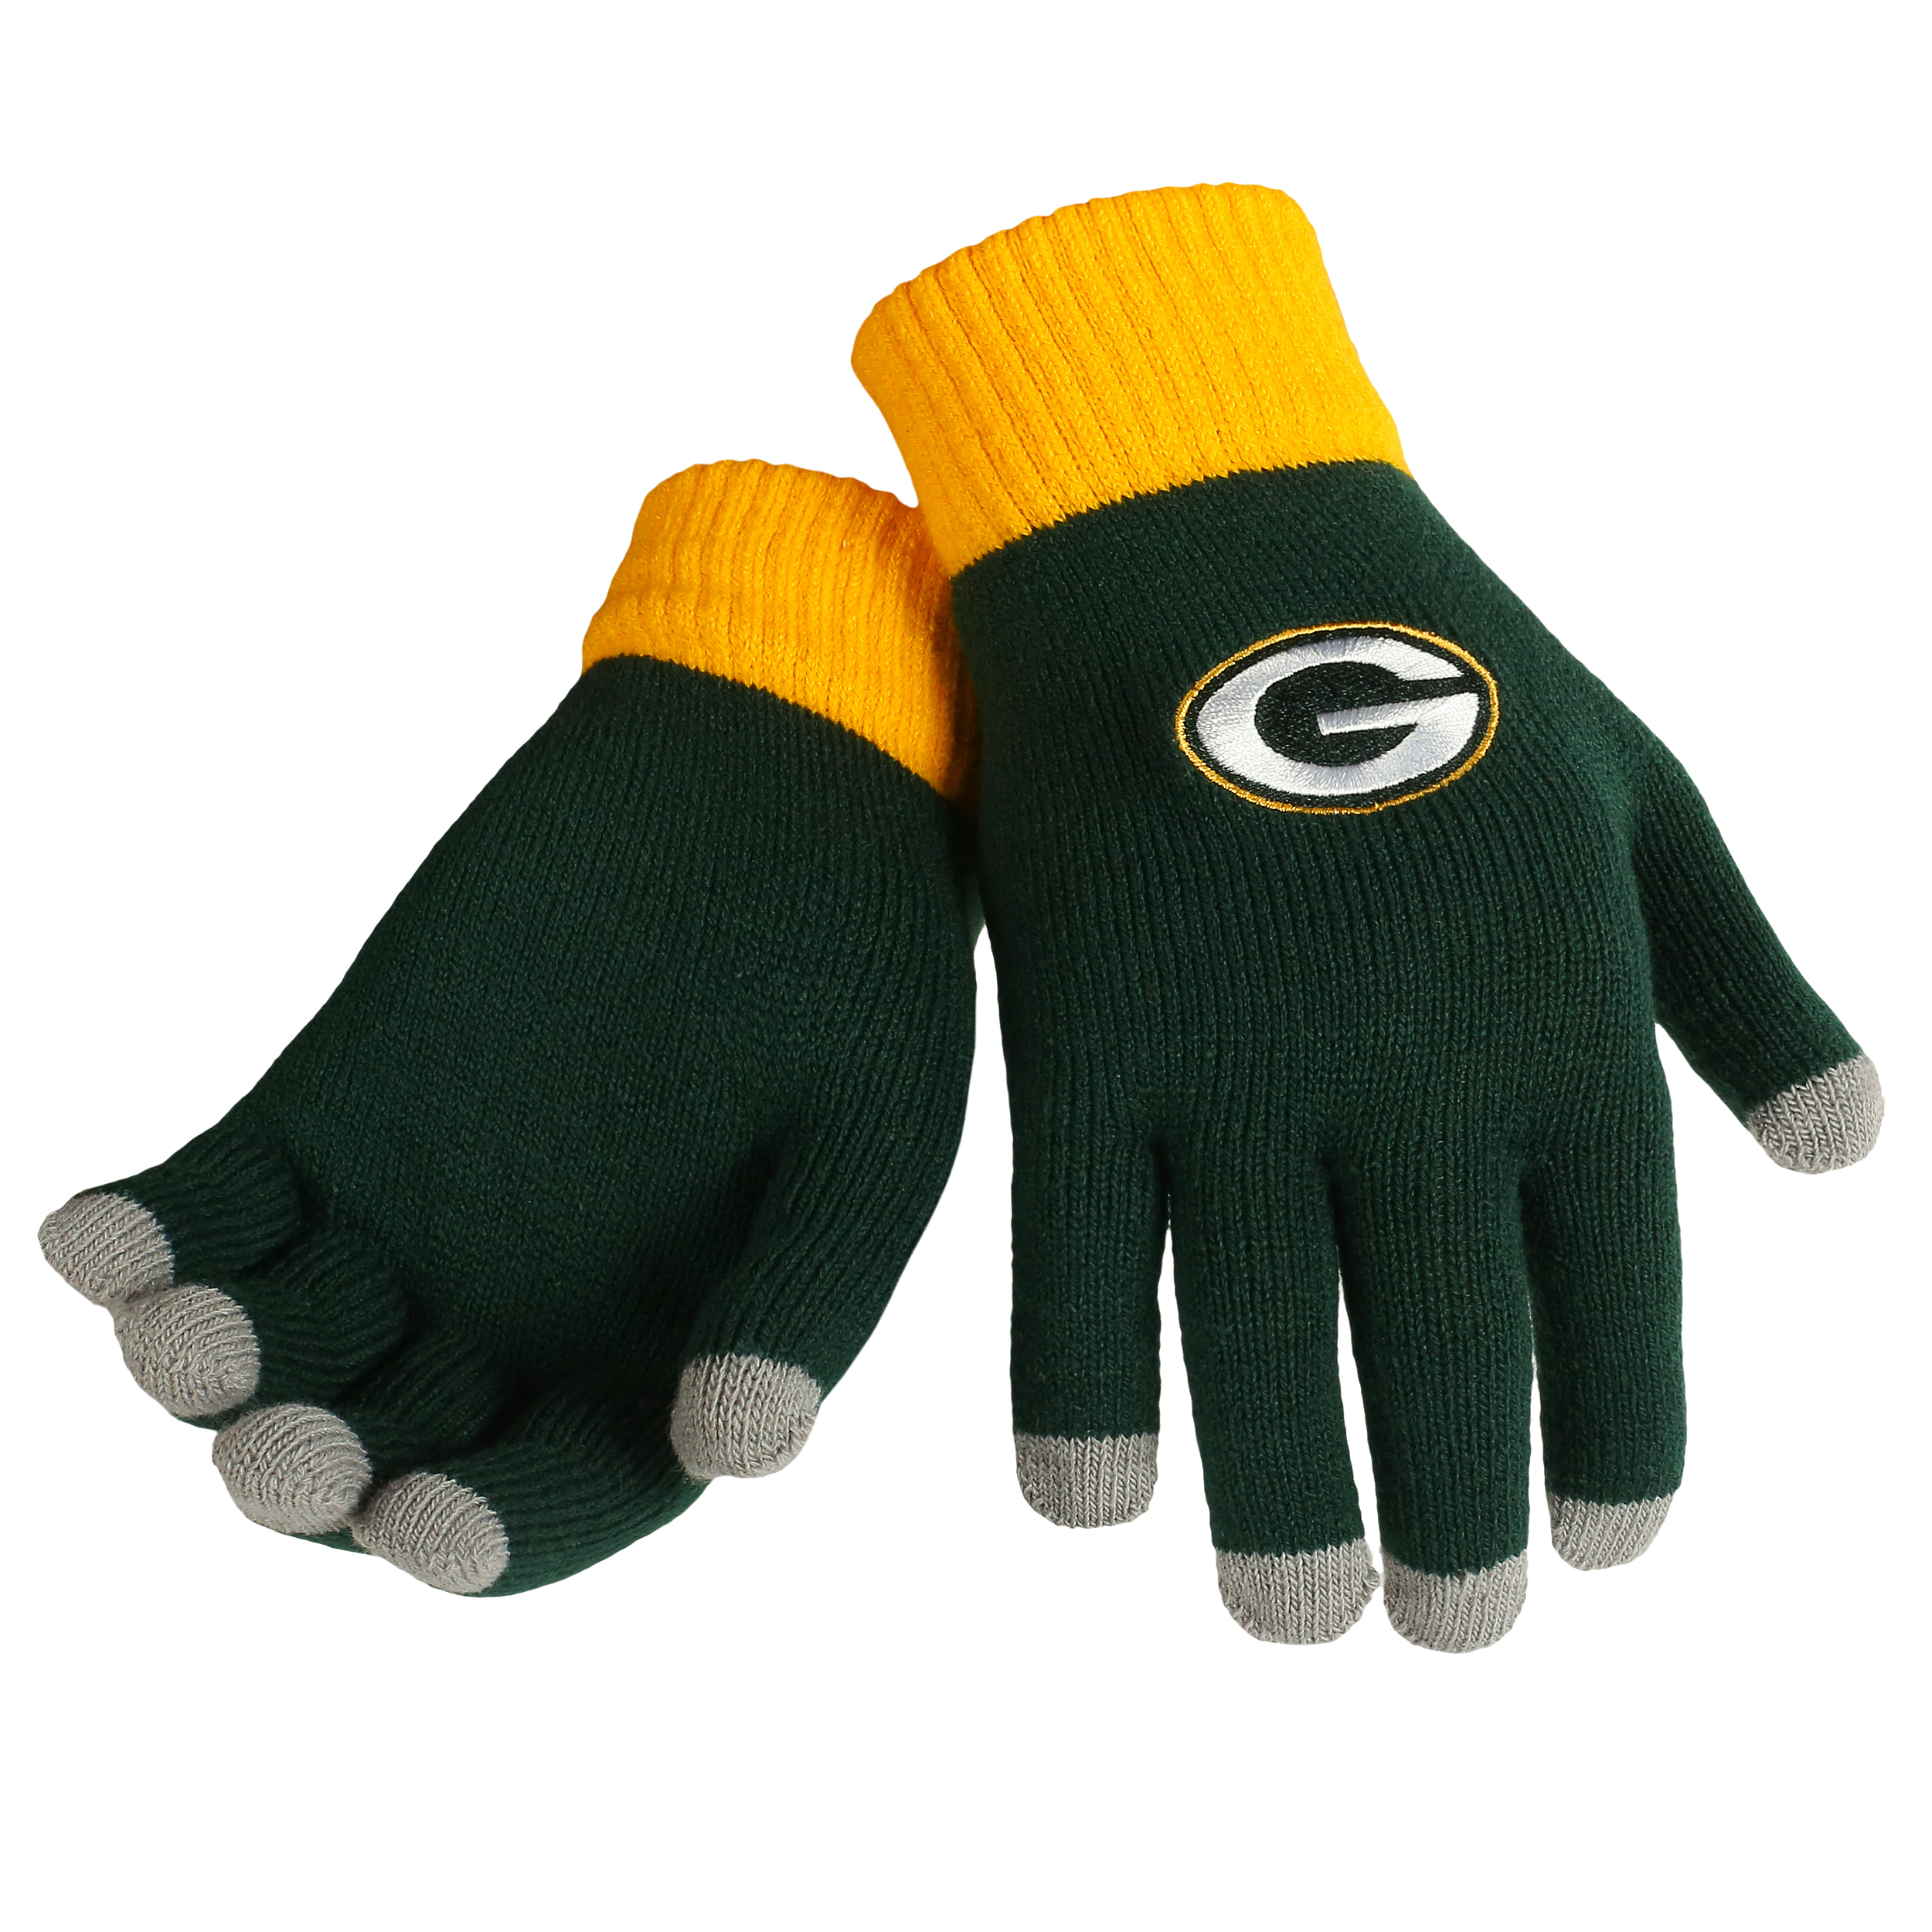 Green Bay Packers Official NFL Glove Solid Outdoor Winter Stretch Knit by Forever Collectibles 240129 by Forever Collectibles